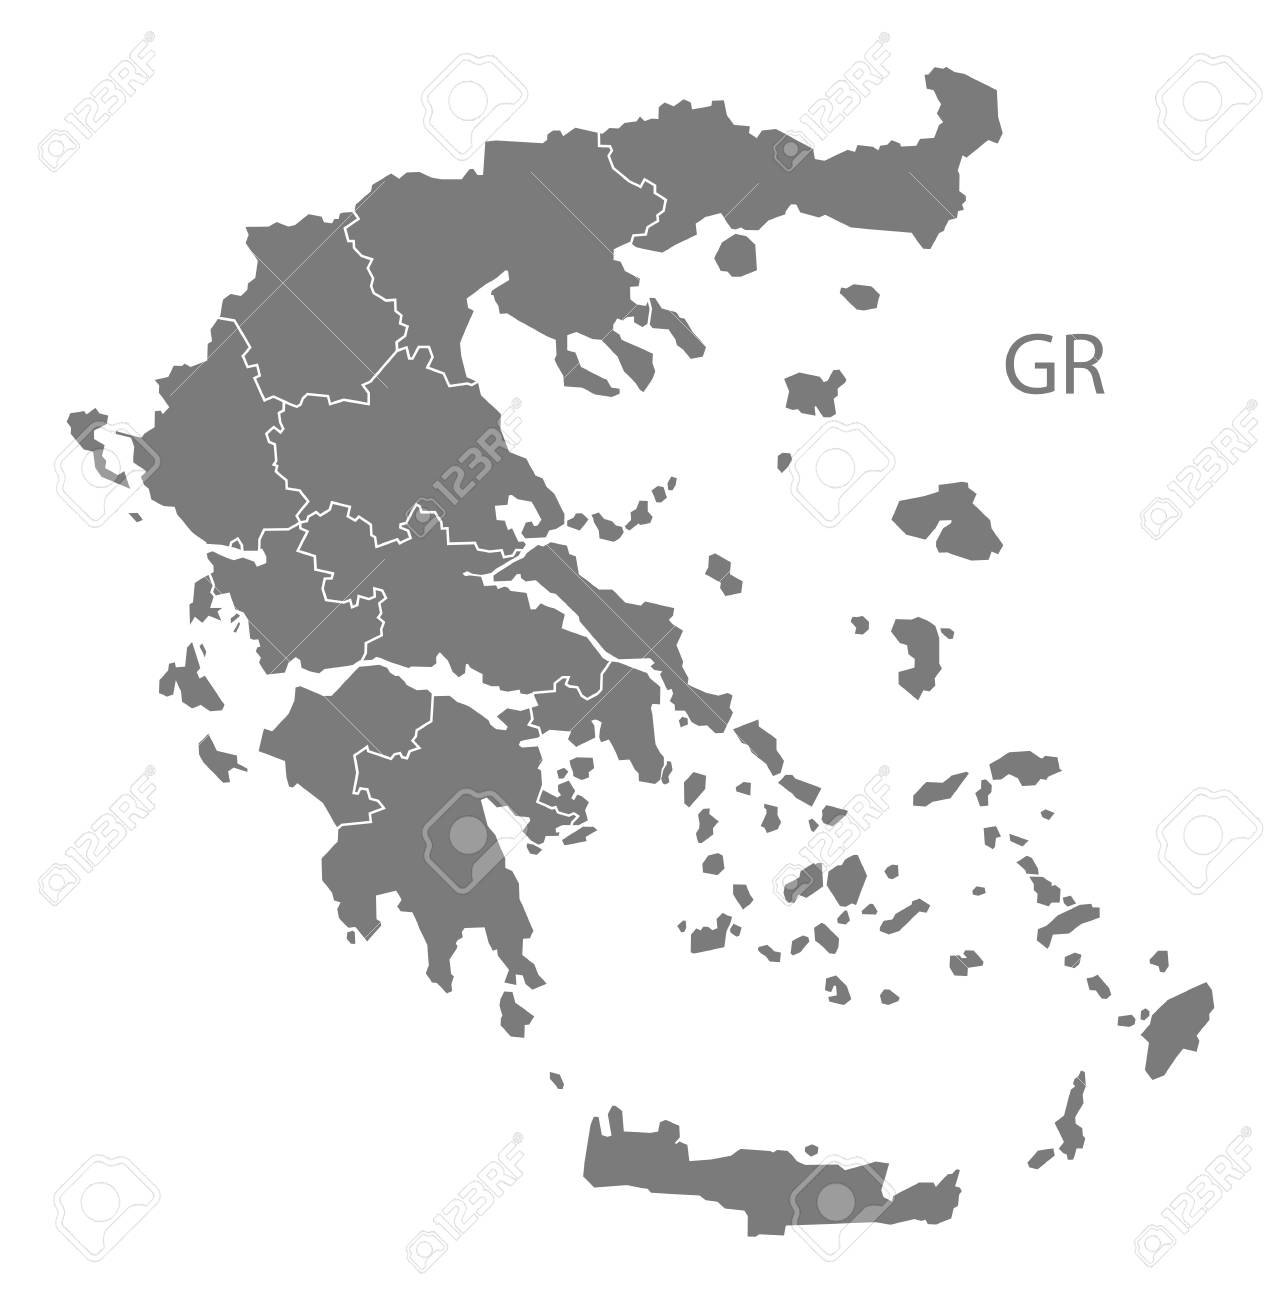 Greece map in gray